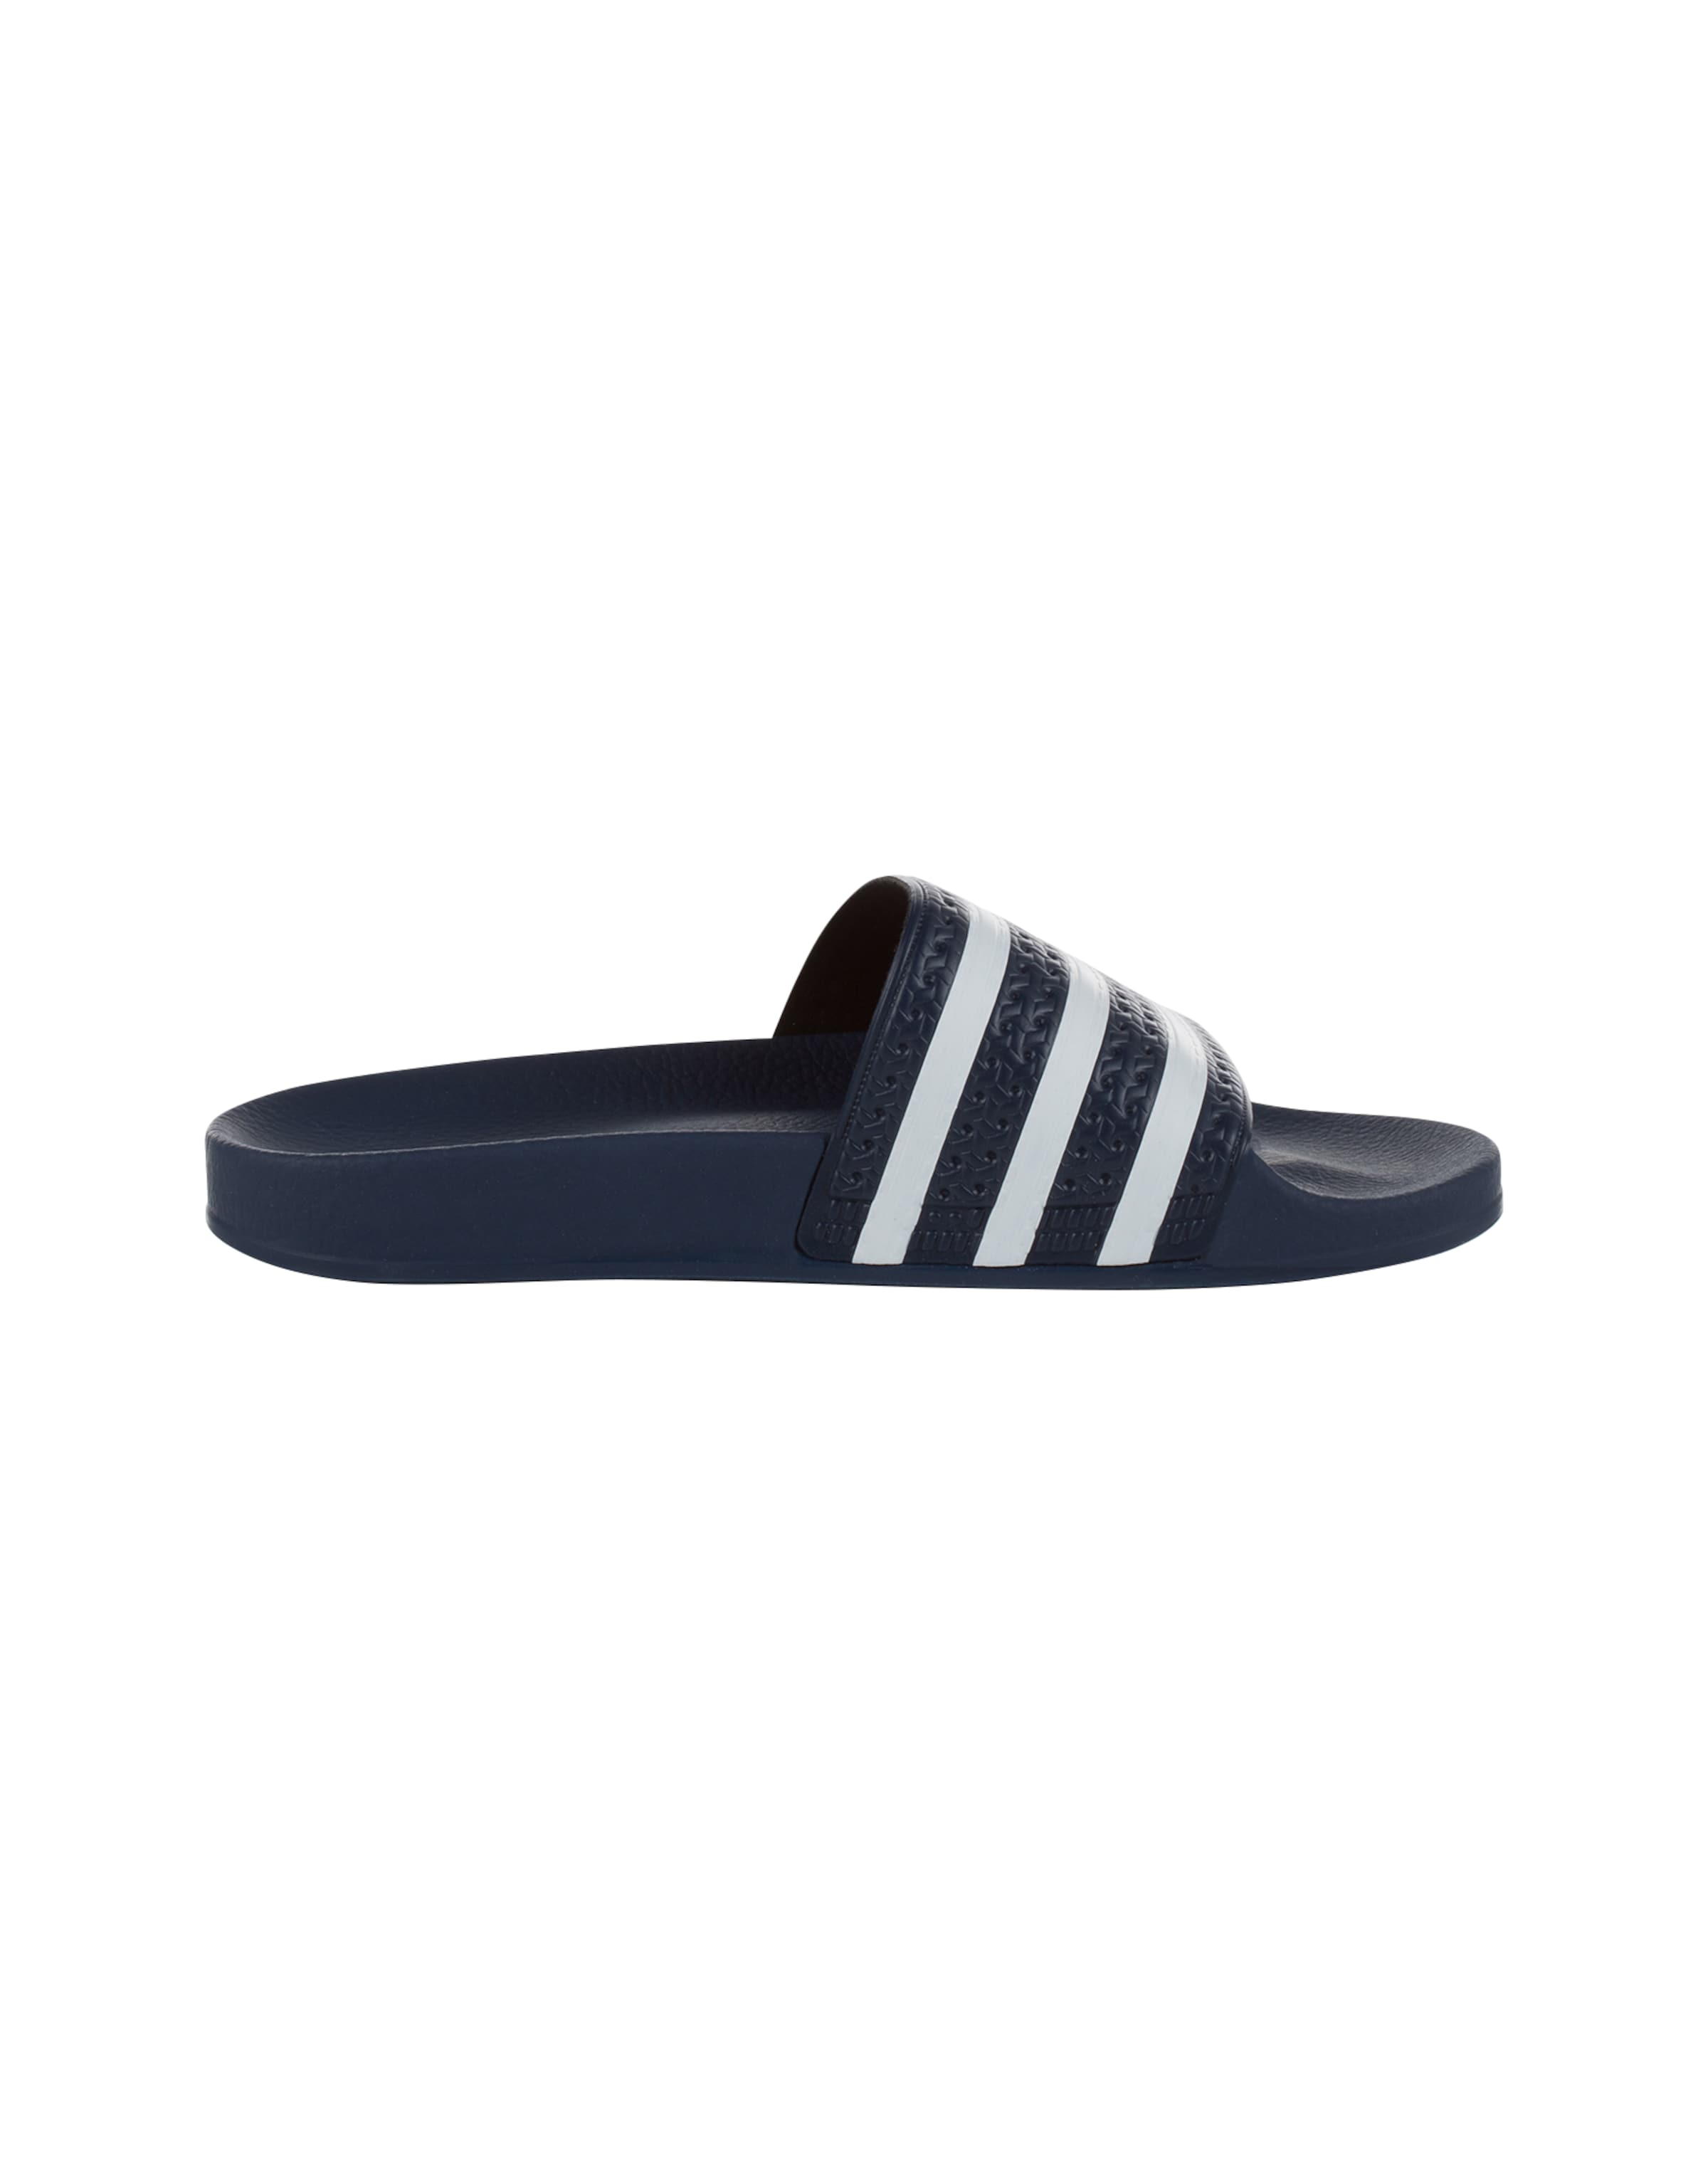 Adidas Bade slider In Originals 'adilette' BlauWeiß nwP0Ok